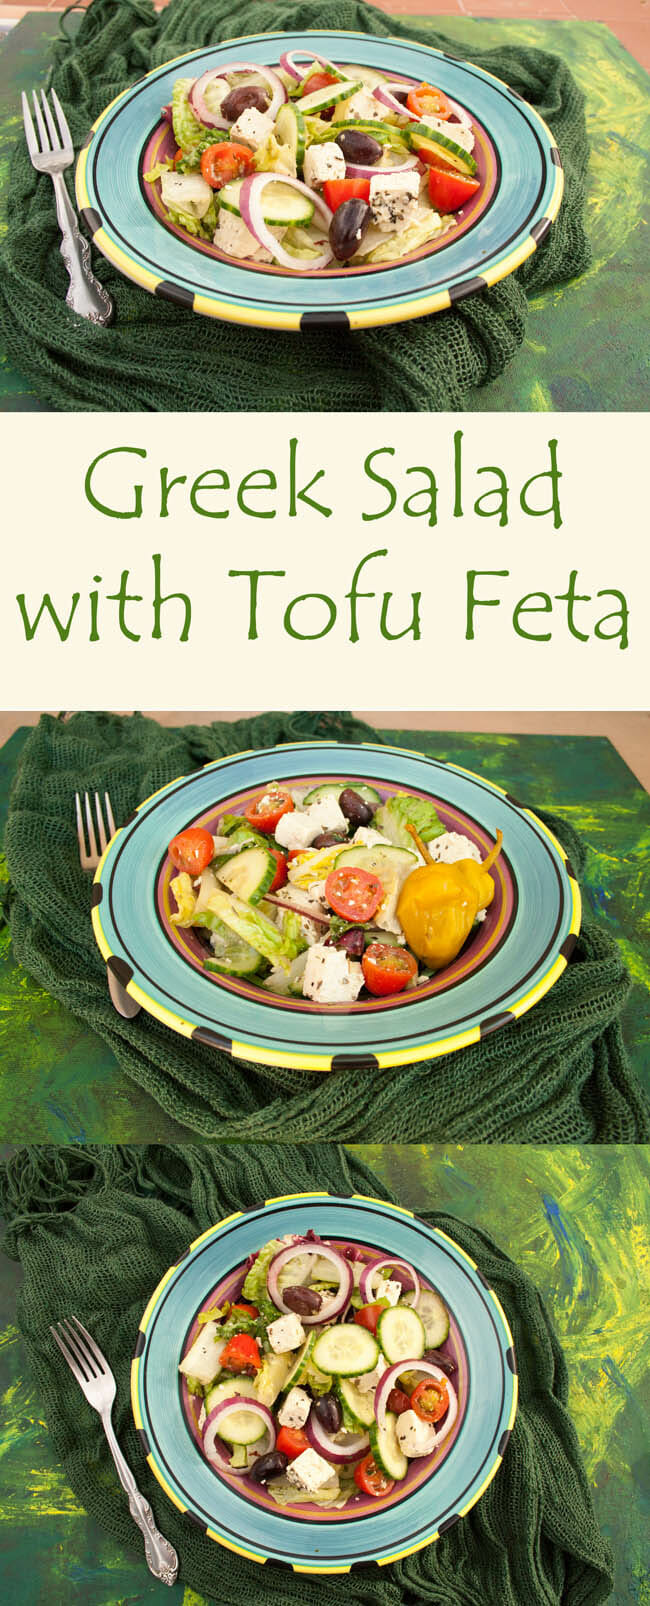 Greek Salad with Tofu Feta collage photo with text.